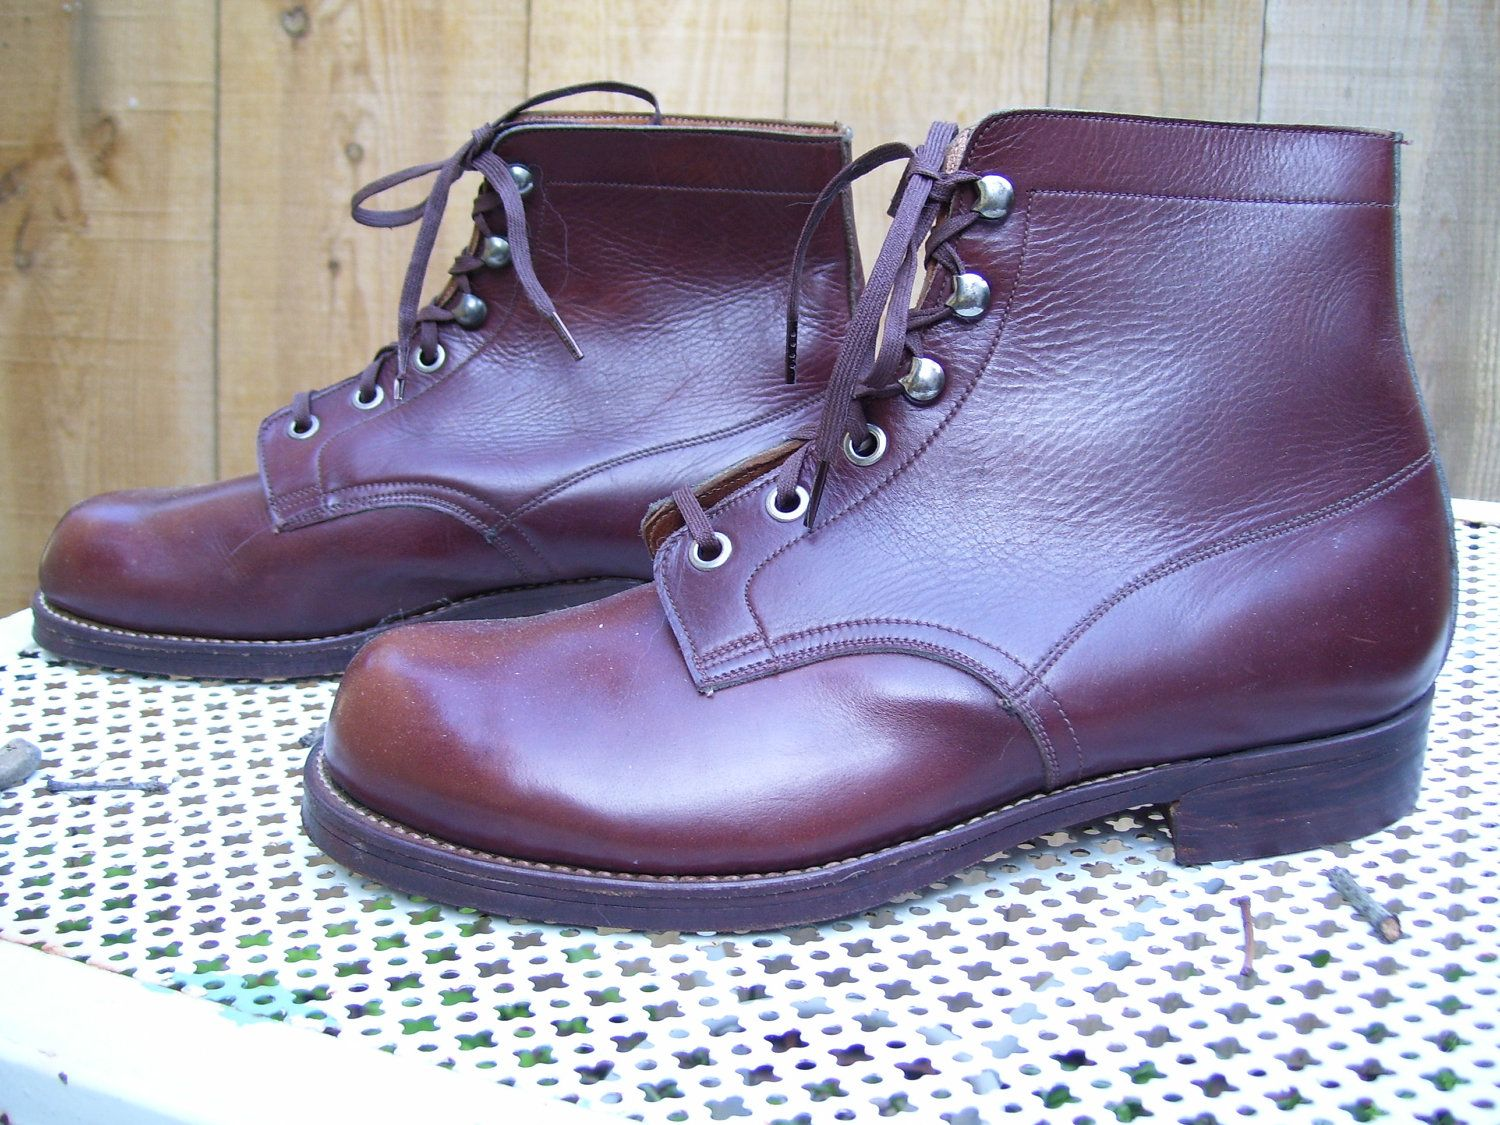 1930's Women's Boots. A more modern take on the style. | Dancing ...